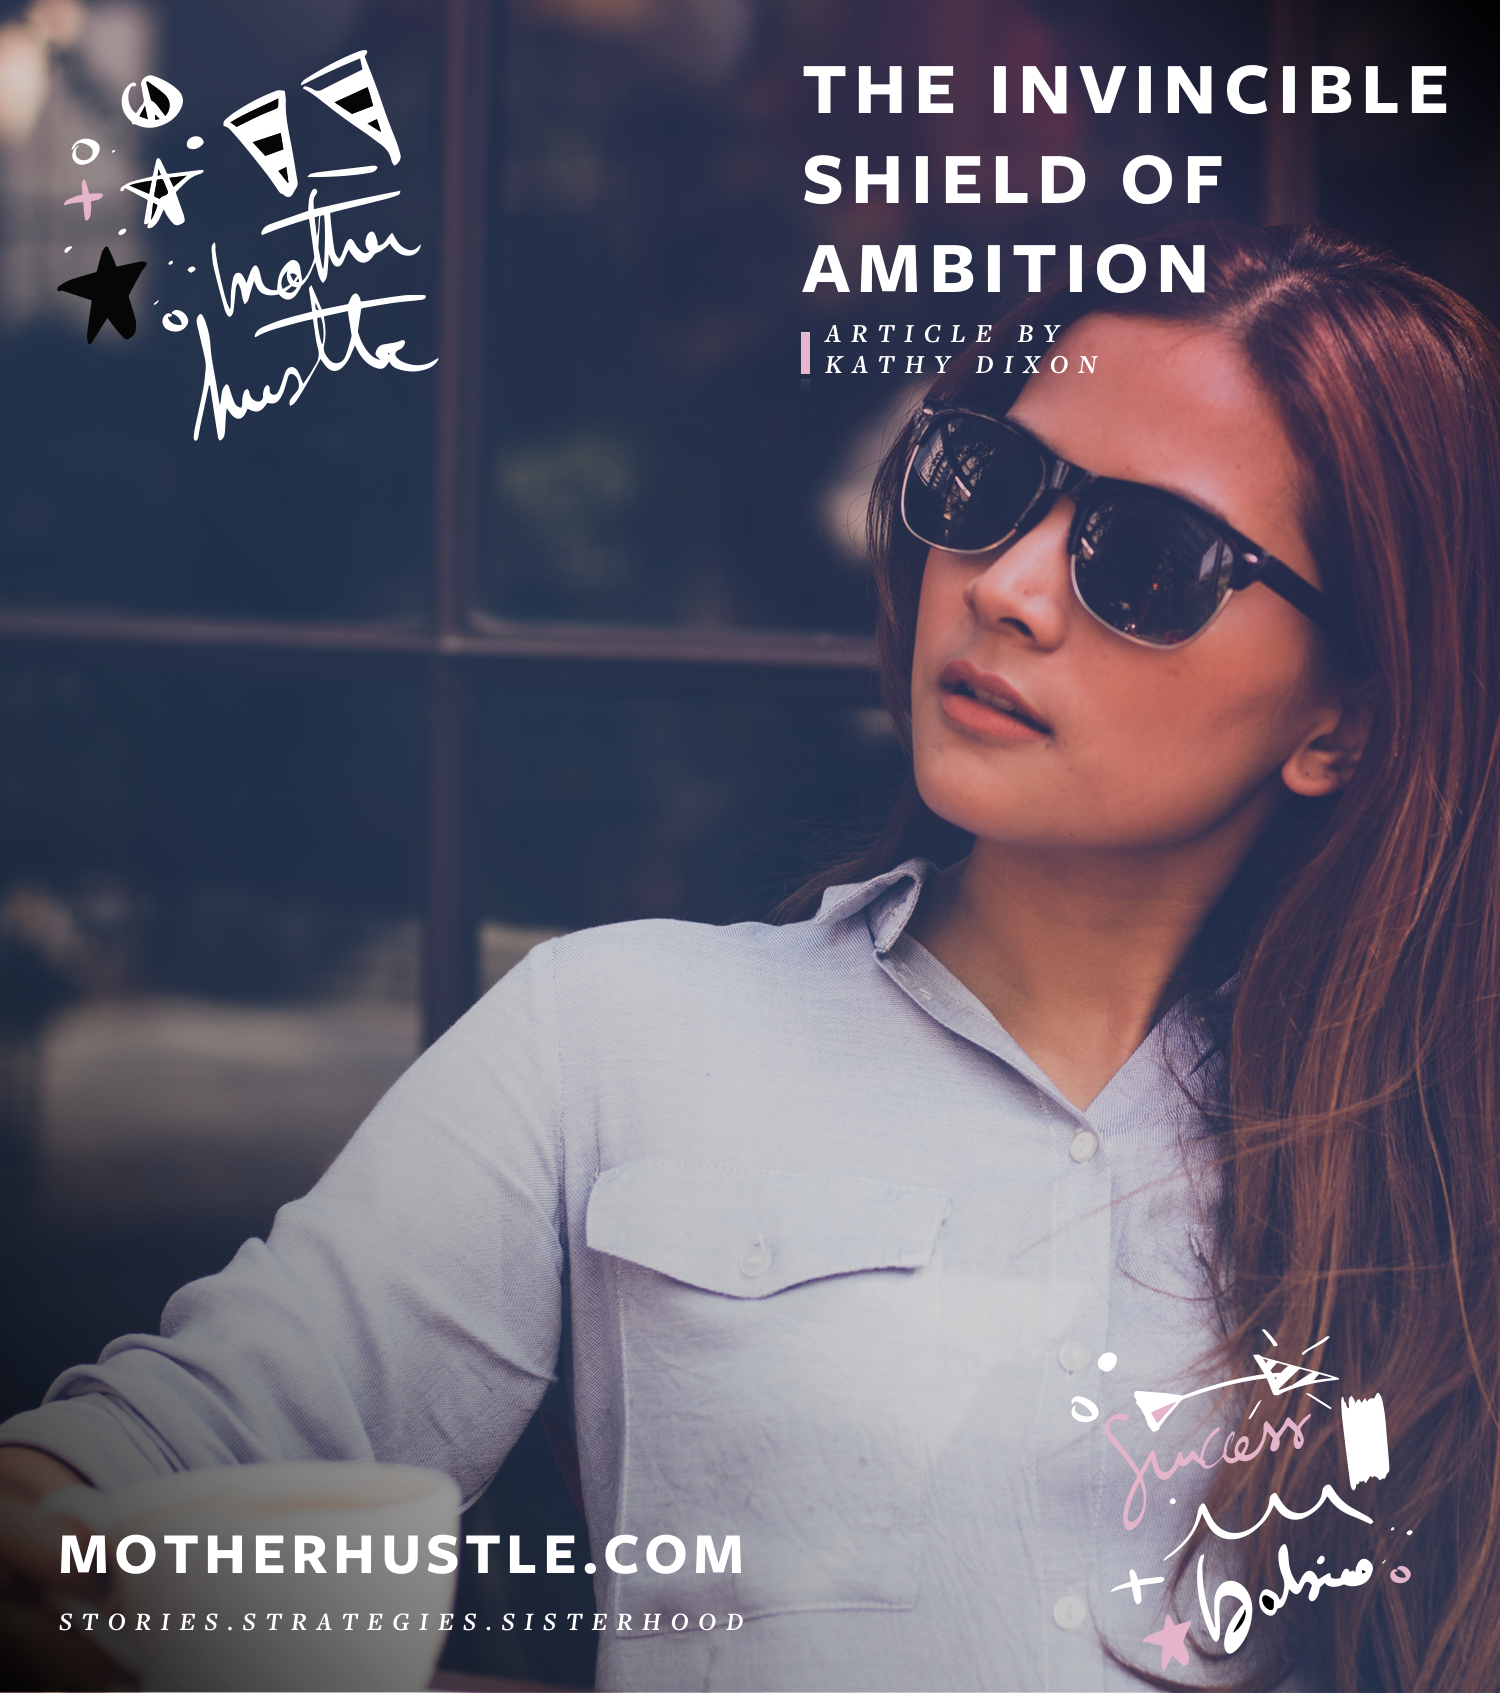 The Invincible Shield of Ambition - Kathy Dixon MotherHustle